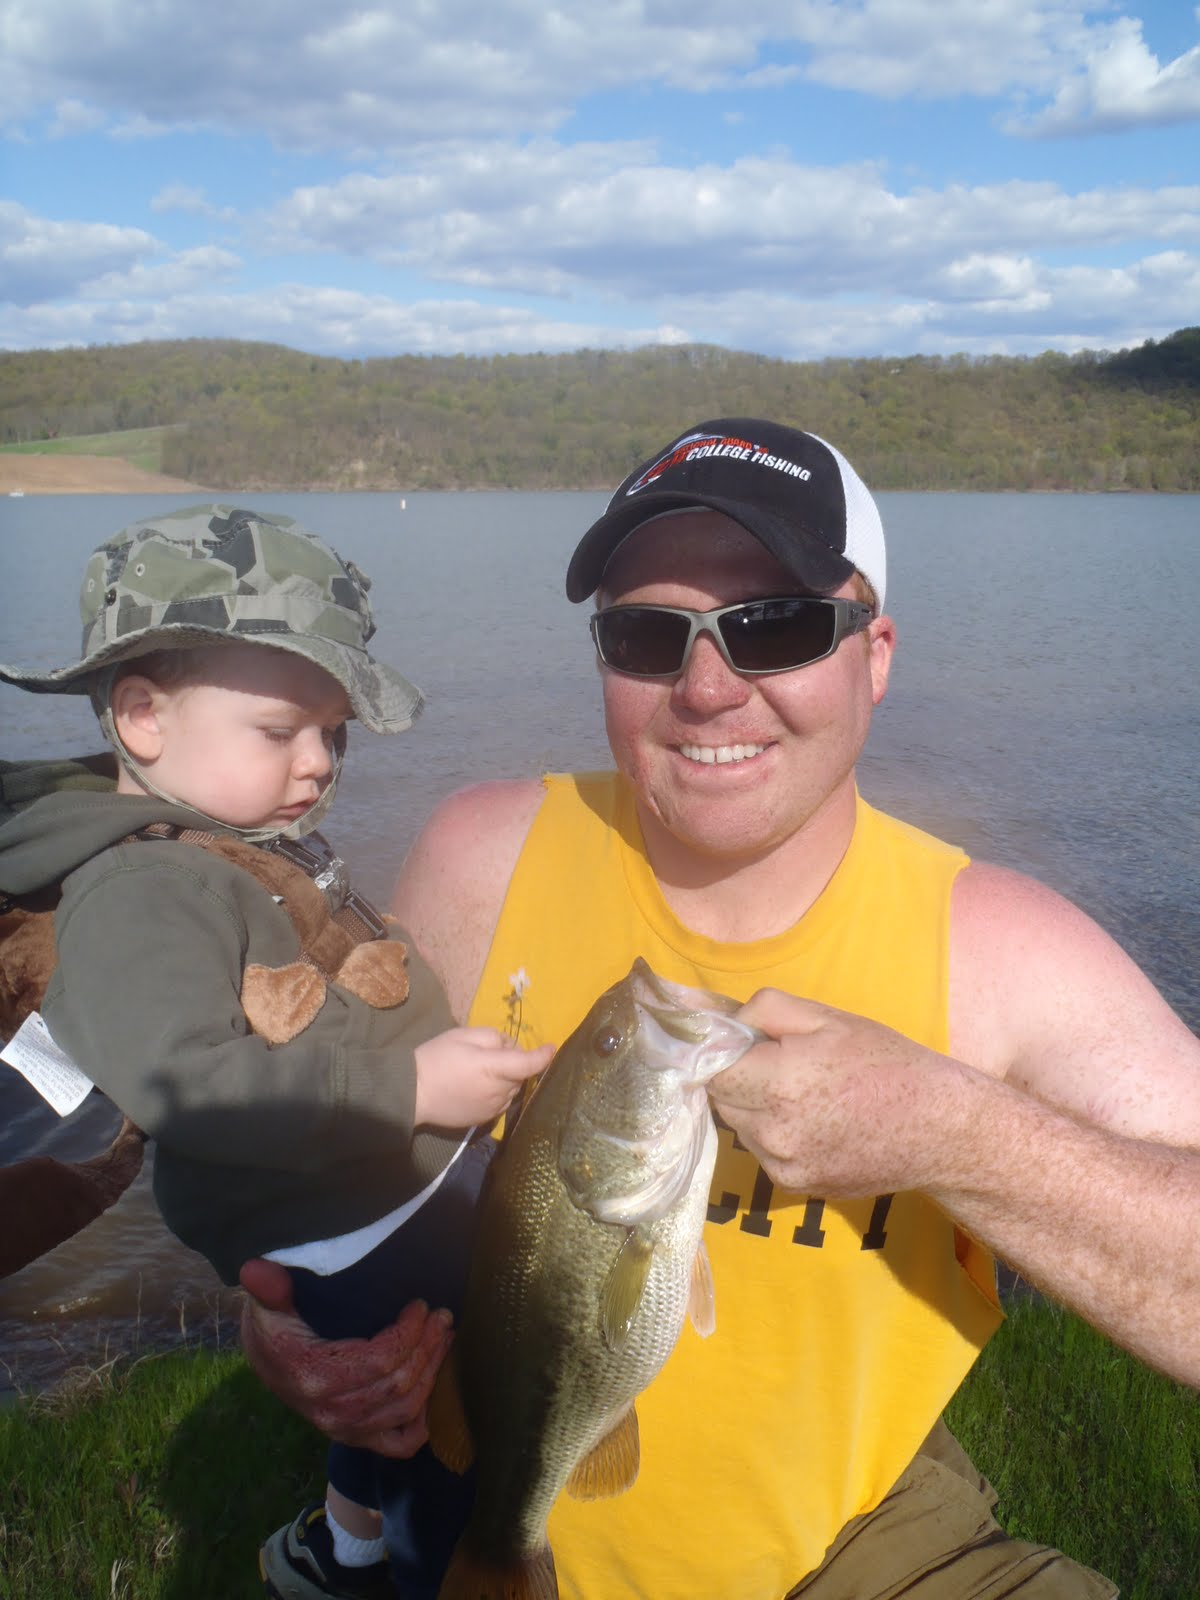 Central pennsylvania bass fishing june 2011 for Fishing lakes in pa